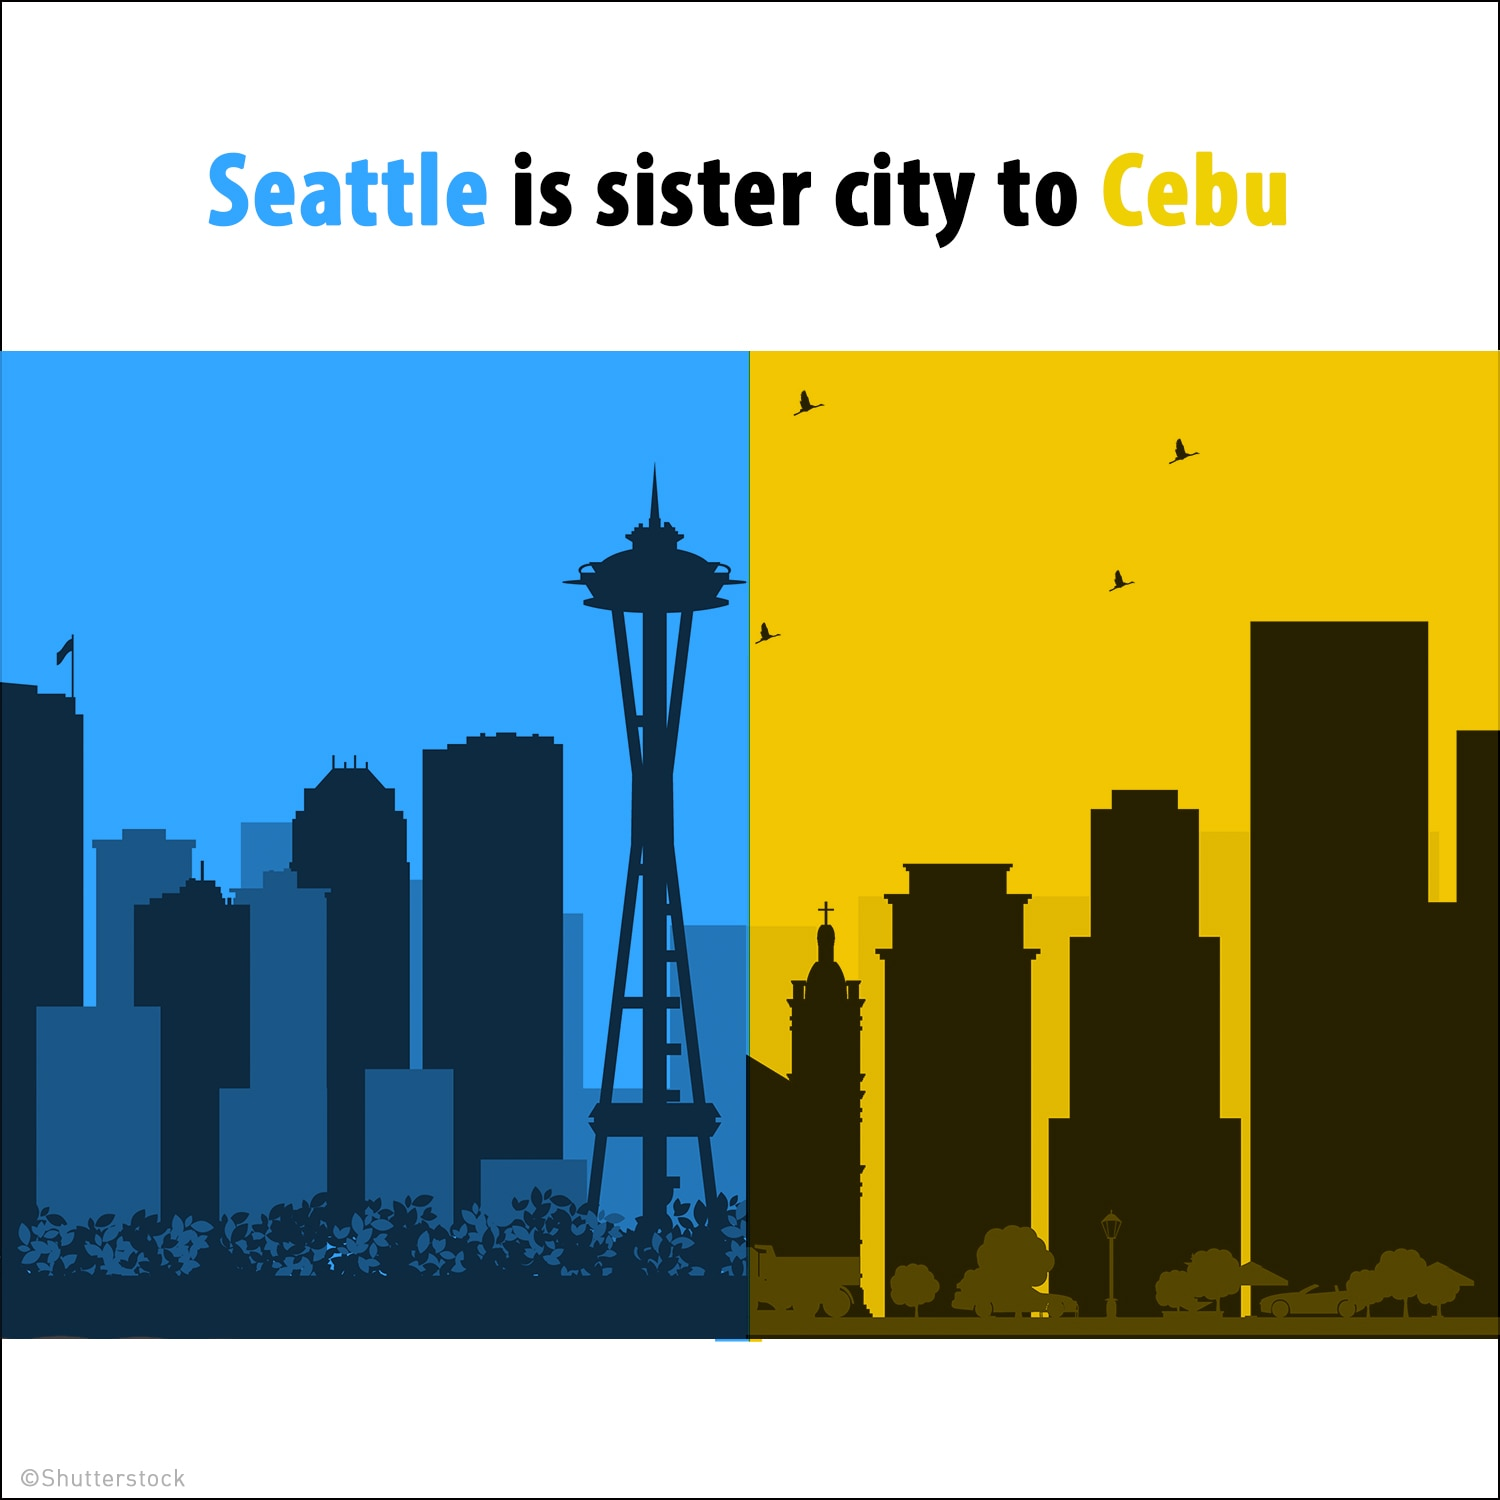 Silhouettes of Seattle and Cebu skylines (Shutterstock)